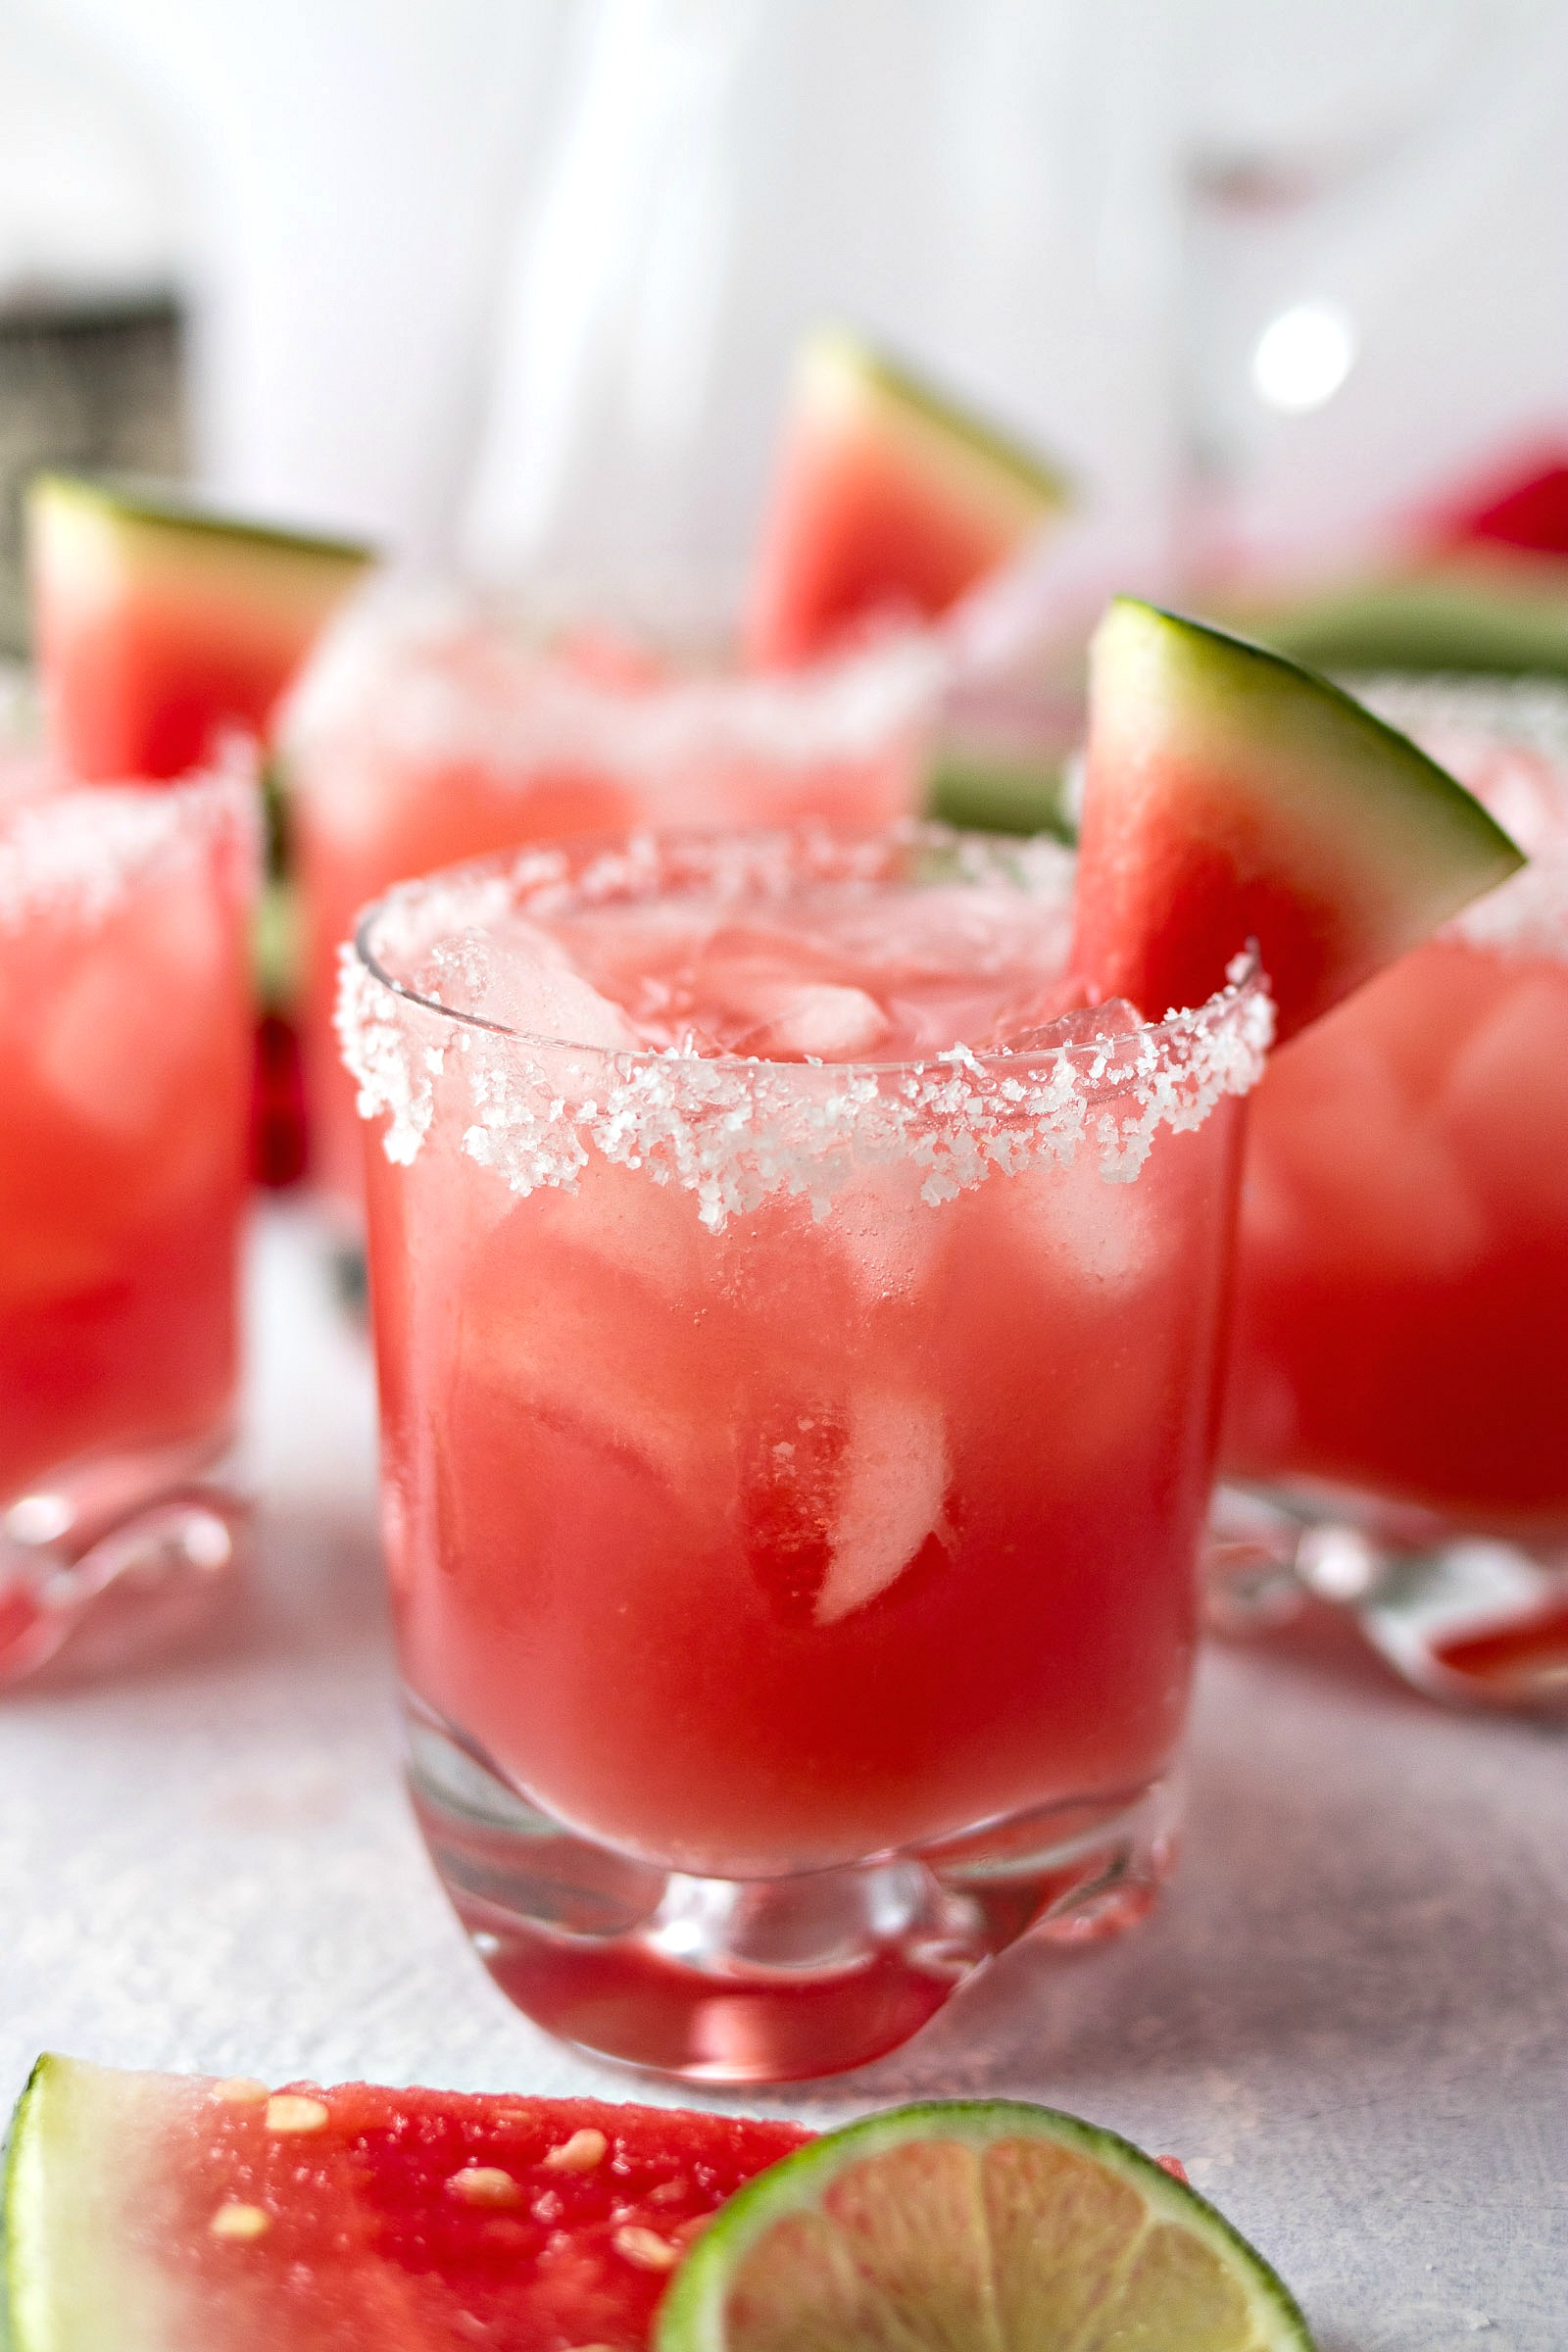 Watermelon Margarita with a watermelon slice on the rim